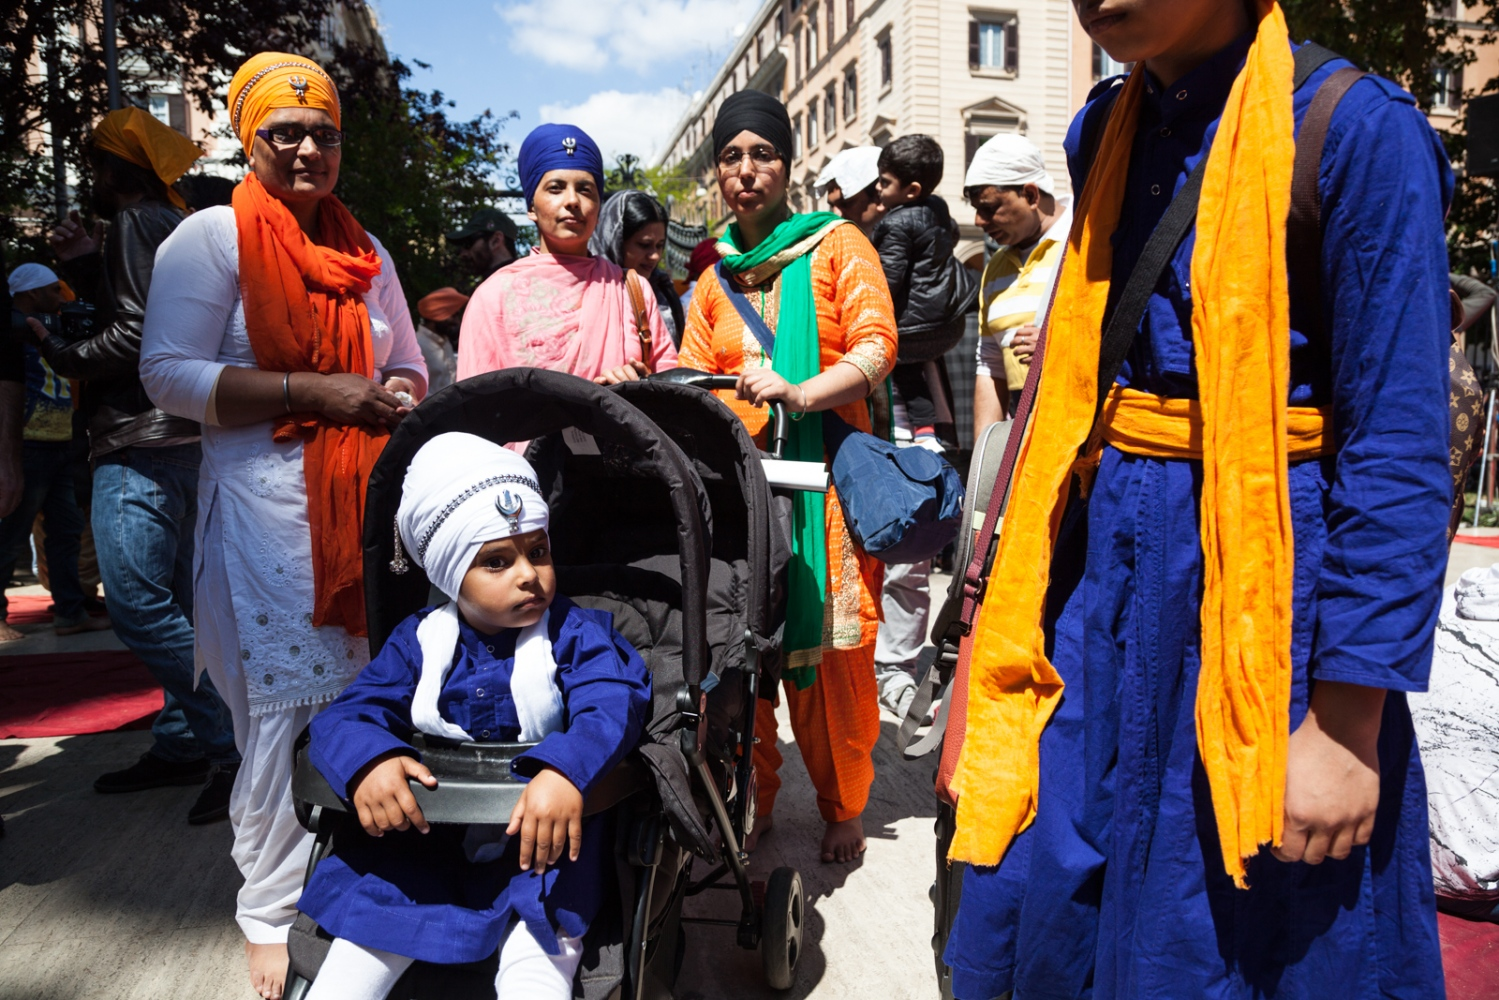 Apr. 23, 2017 - The Sikh community of Rome celebrates Vaisakhi, the festivity that marks the Sikh new year, in Piazza Vittorio, the most multicultural area of Rome.